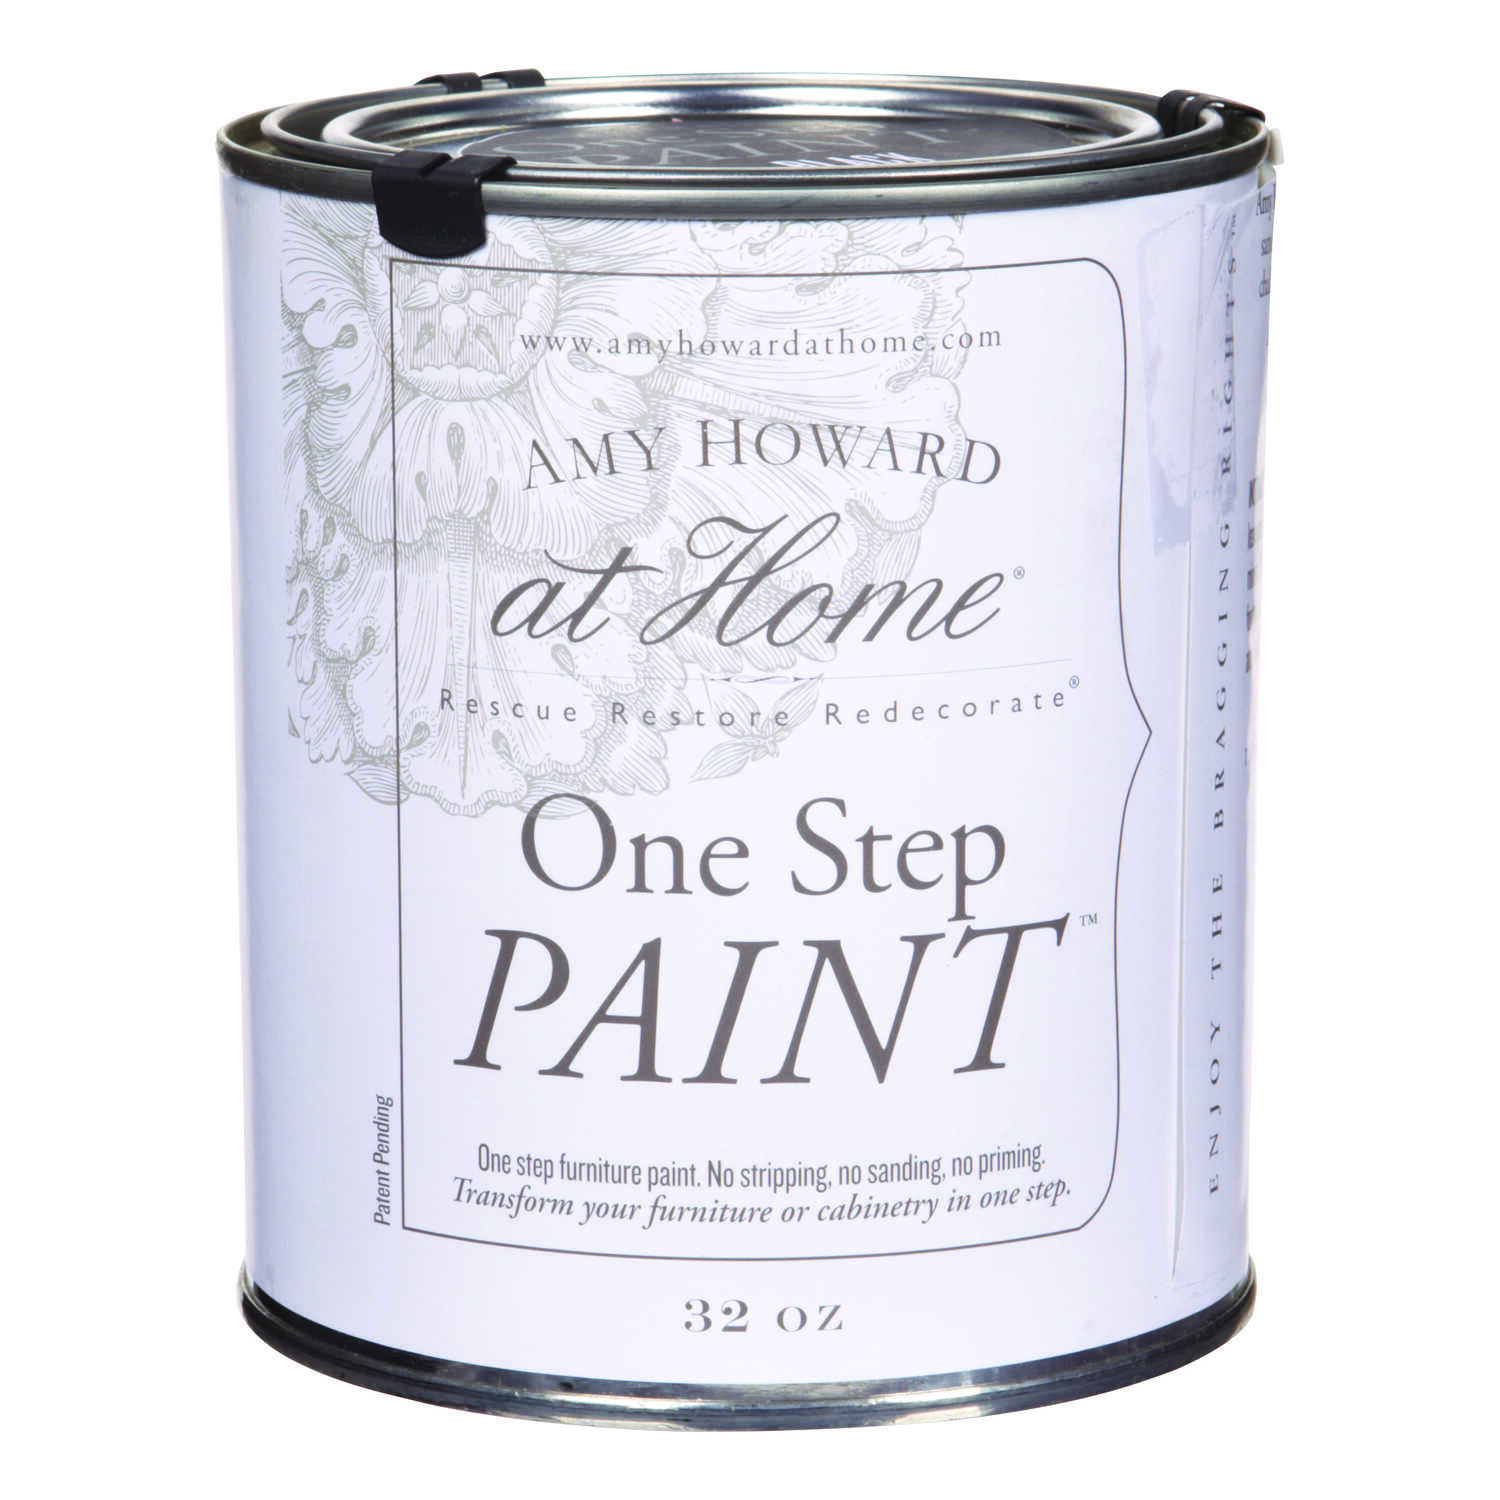 Amy Howard at Home  Flat Chalky Finish  Latex  One Step Paint  32 oz. Black